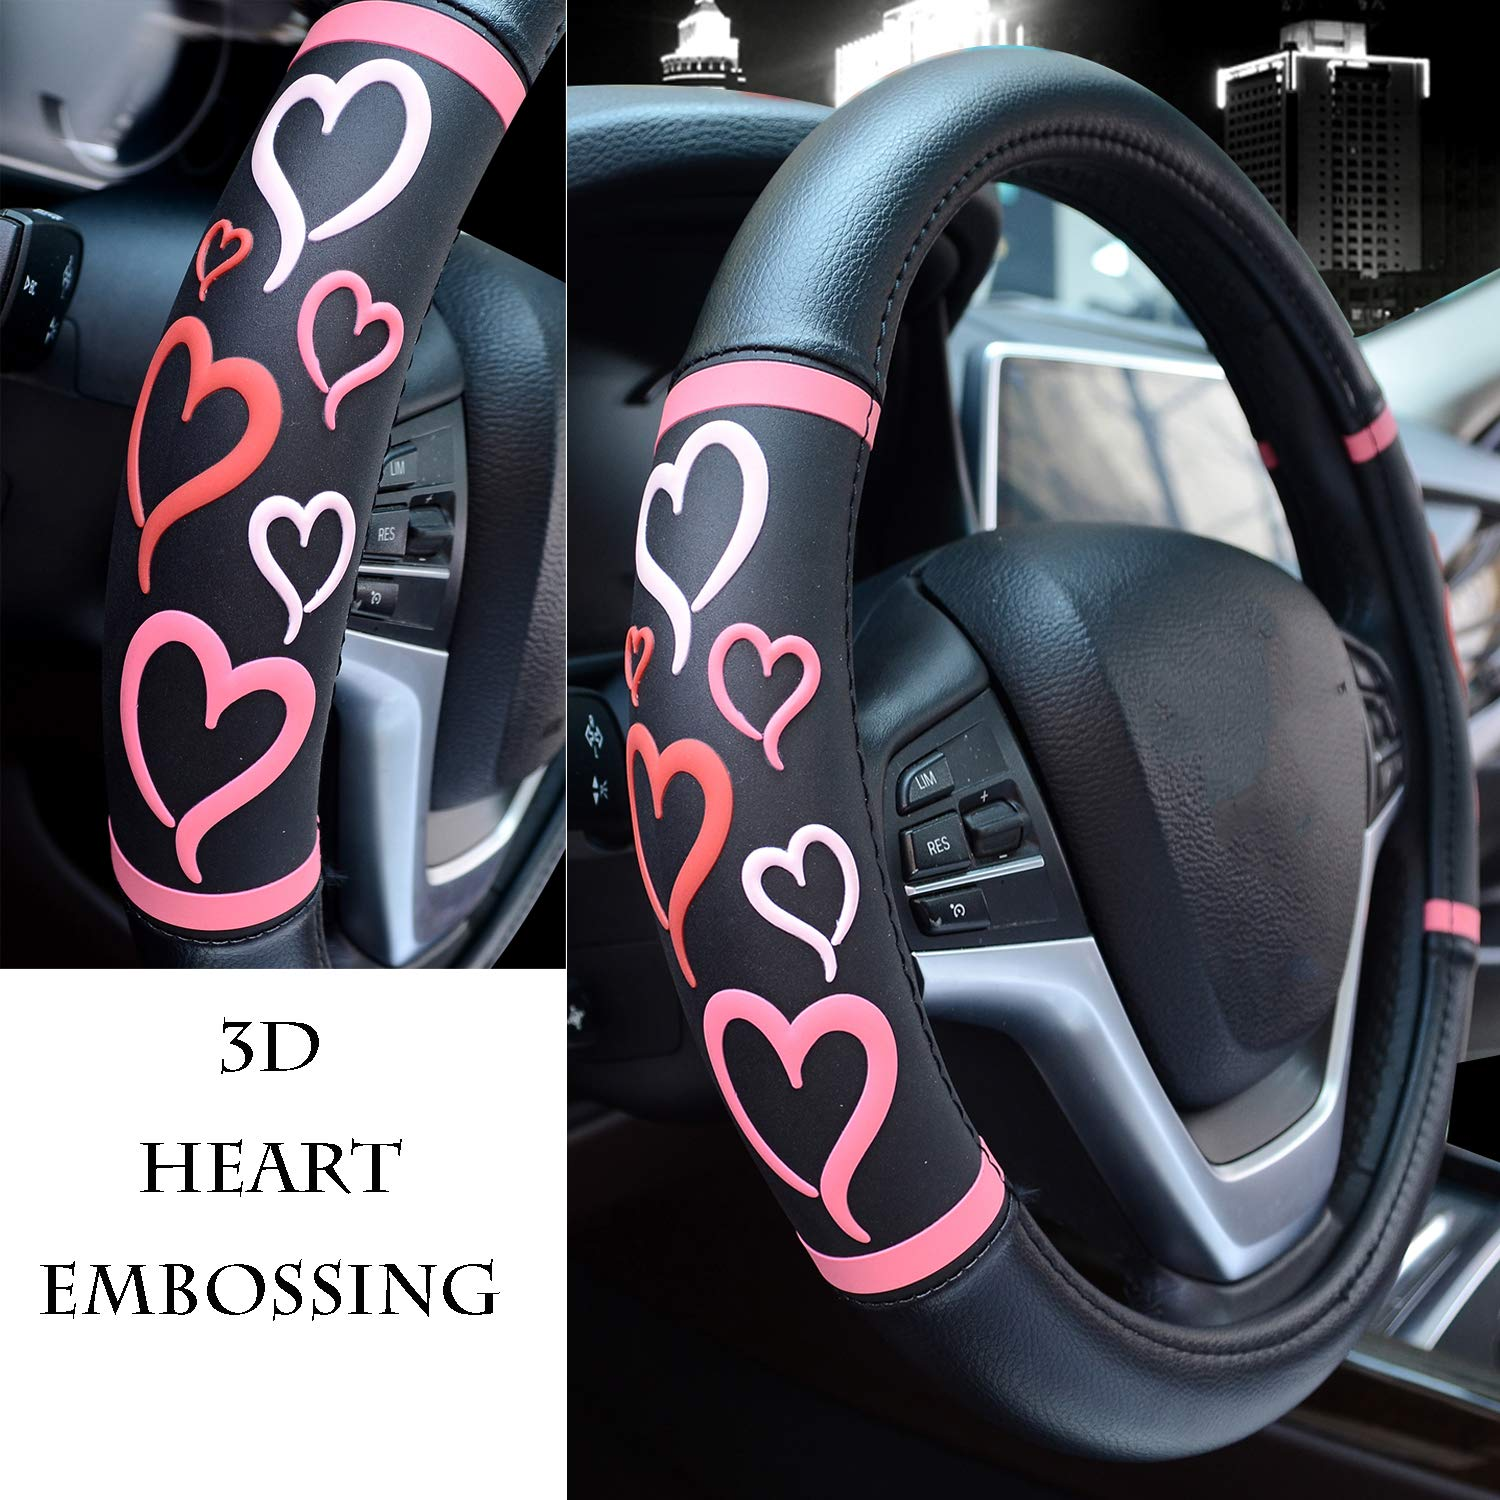 Didida Steering Wheel Covers for Women Men Couple New 3D Heart Embossing Love Cartoon Microfiber Leather Universal 15 Inch Blue